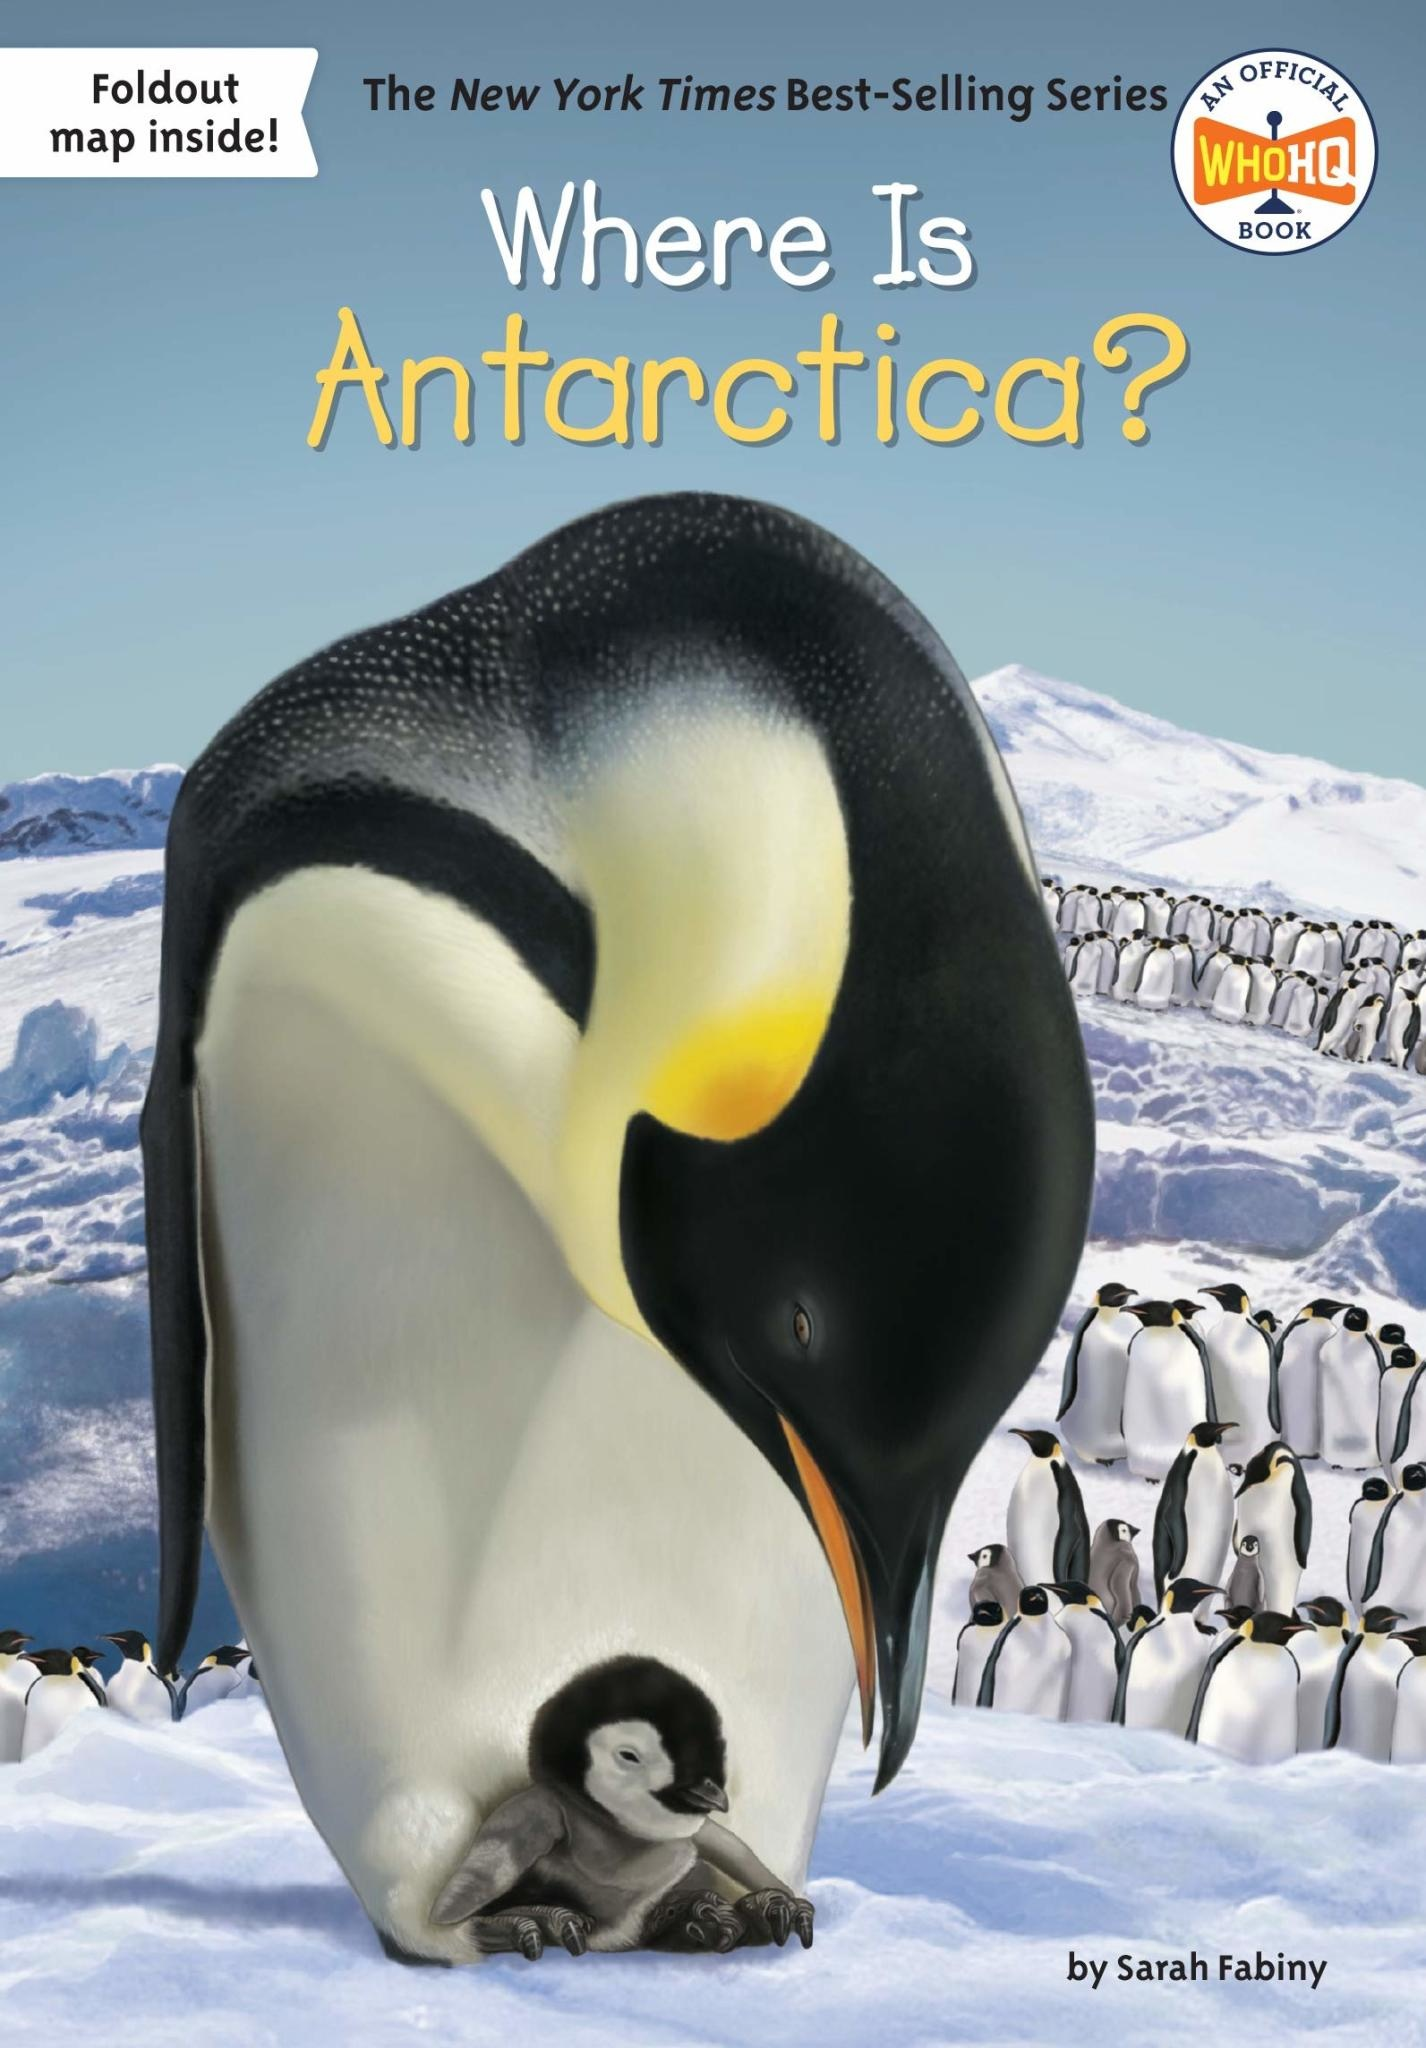 Where Is Antarctica? Paperback Book